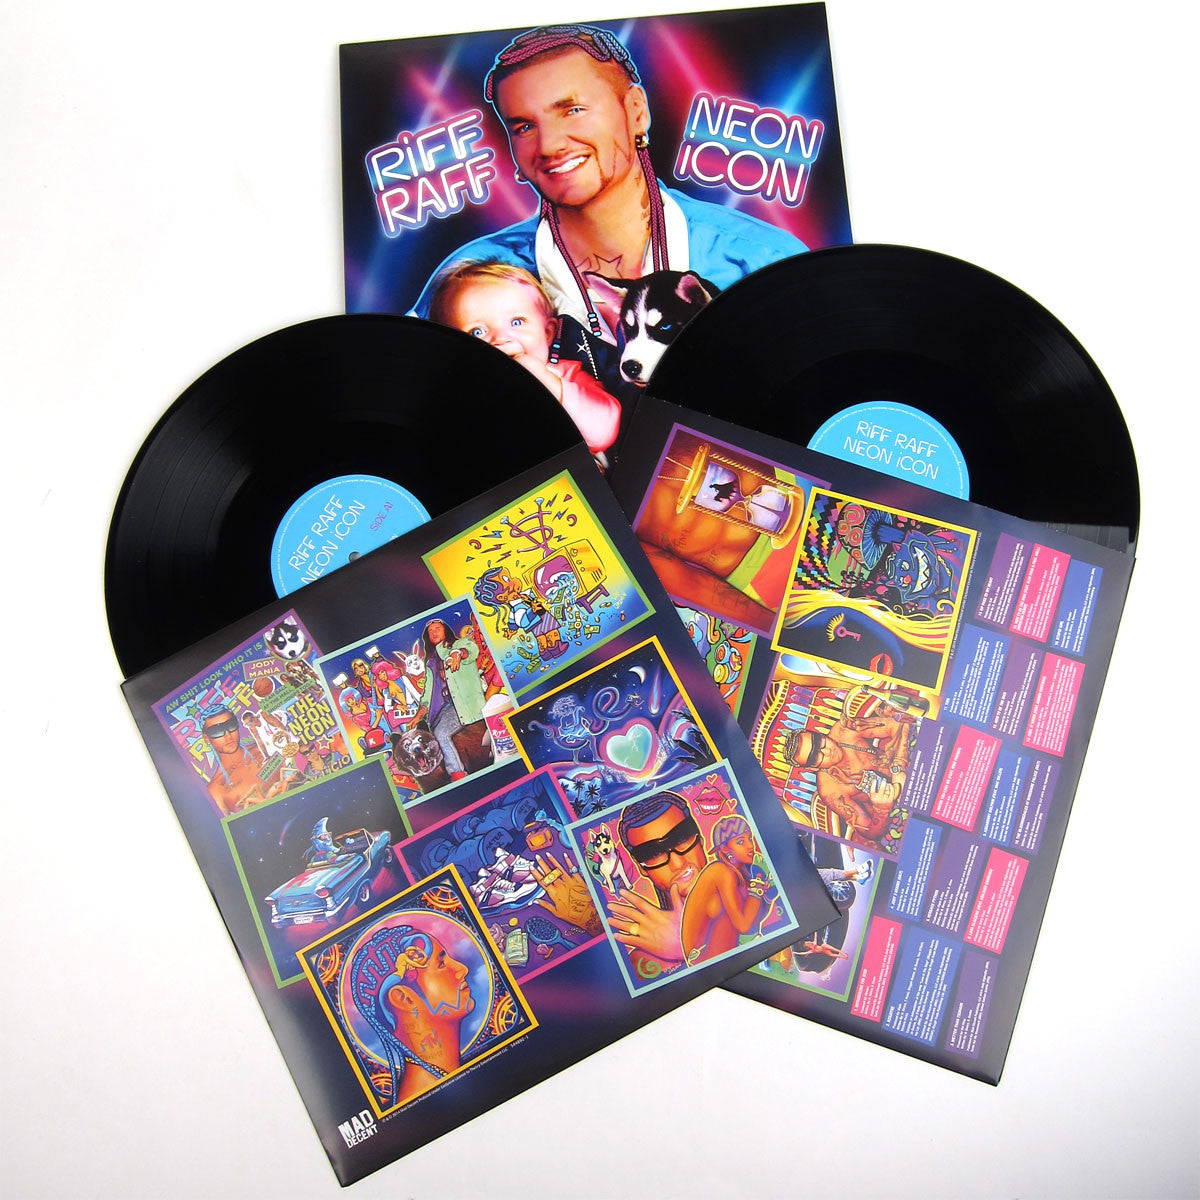 Riff Raff: Neon Icon (Free MP3) Vinyl 2LP detail